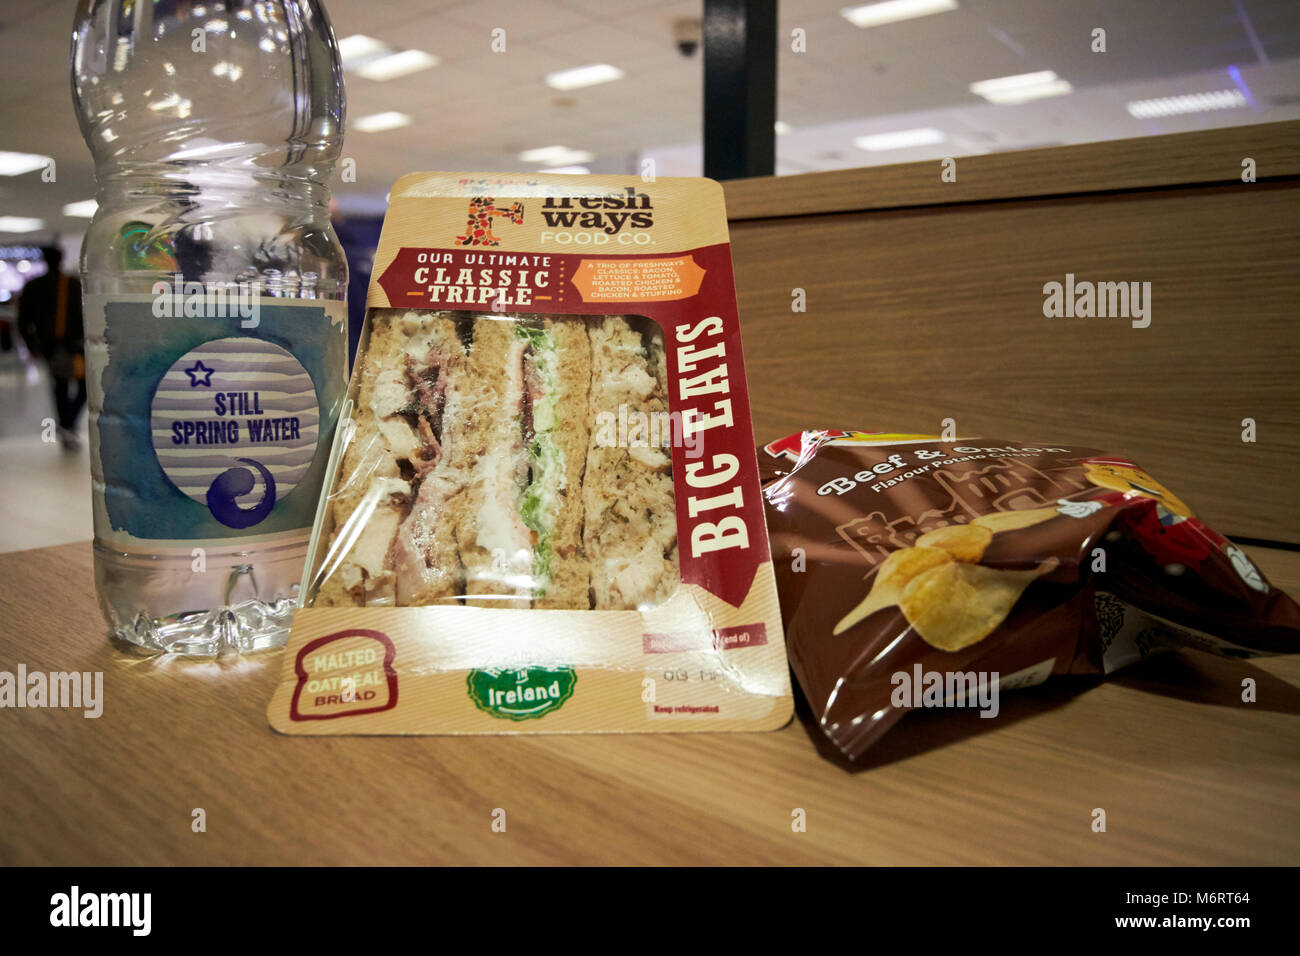 Meal Deal Stock Photos Meal Deal Stock Images Alamy